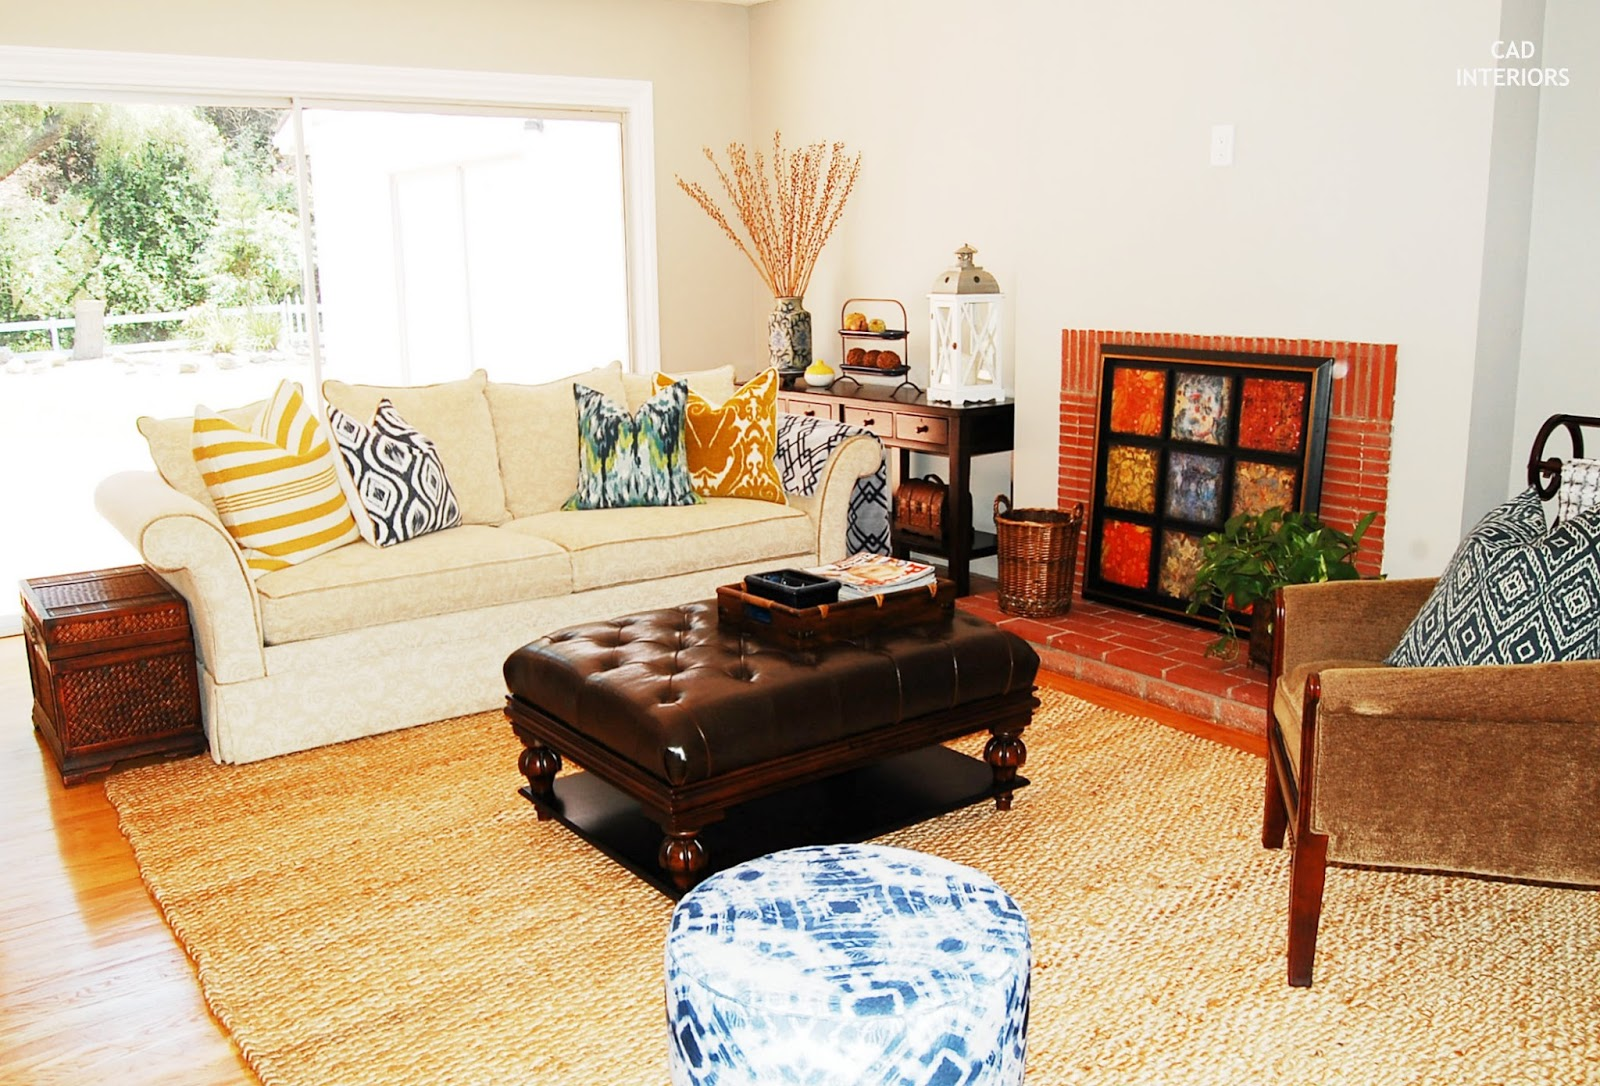 Jute Rug Living Room Cad Interiors Affordable Stylish Interiors